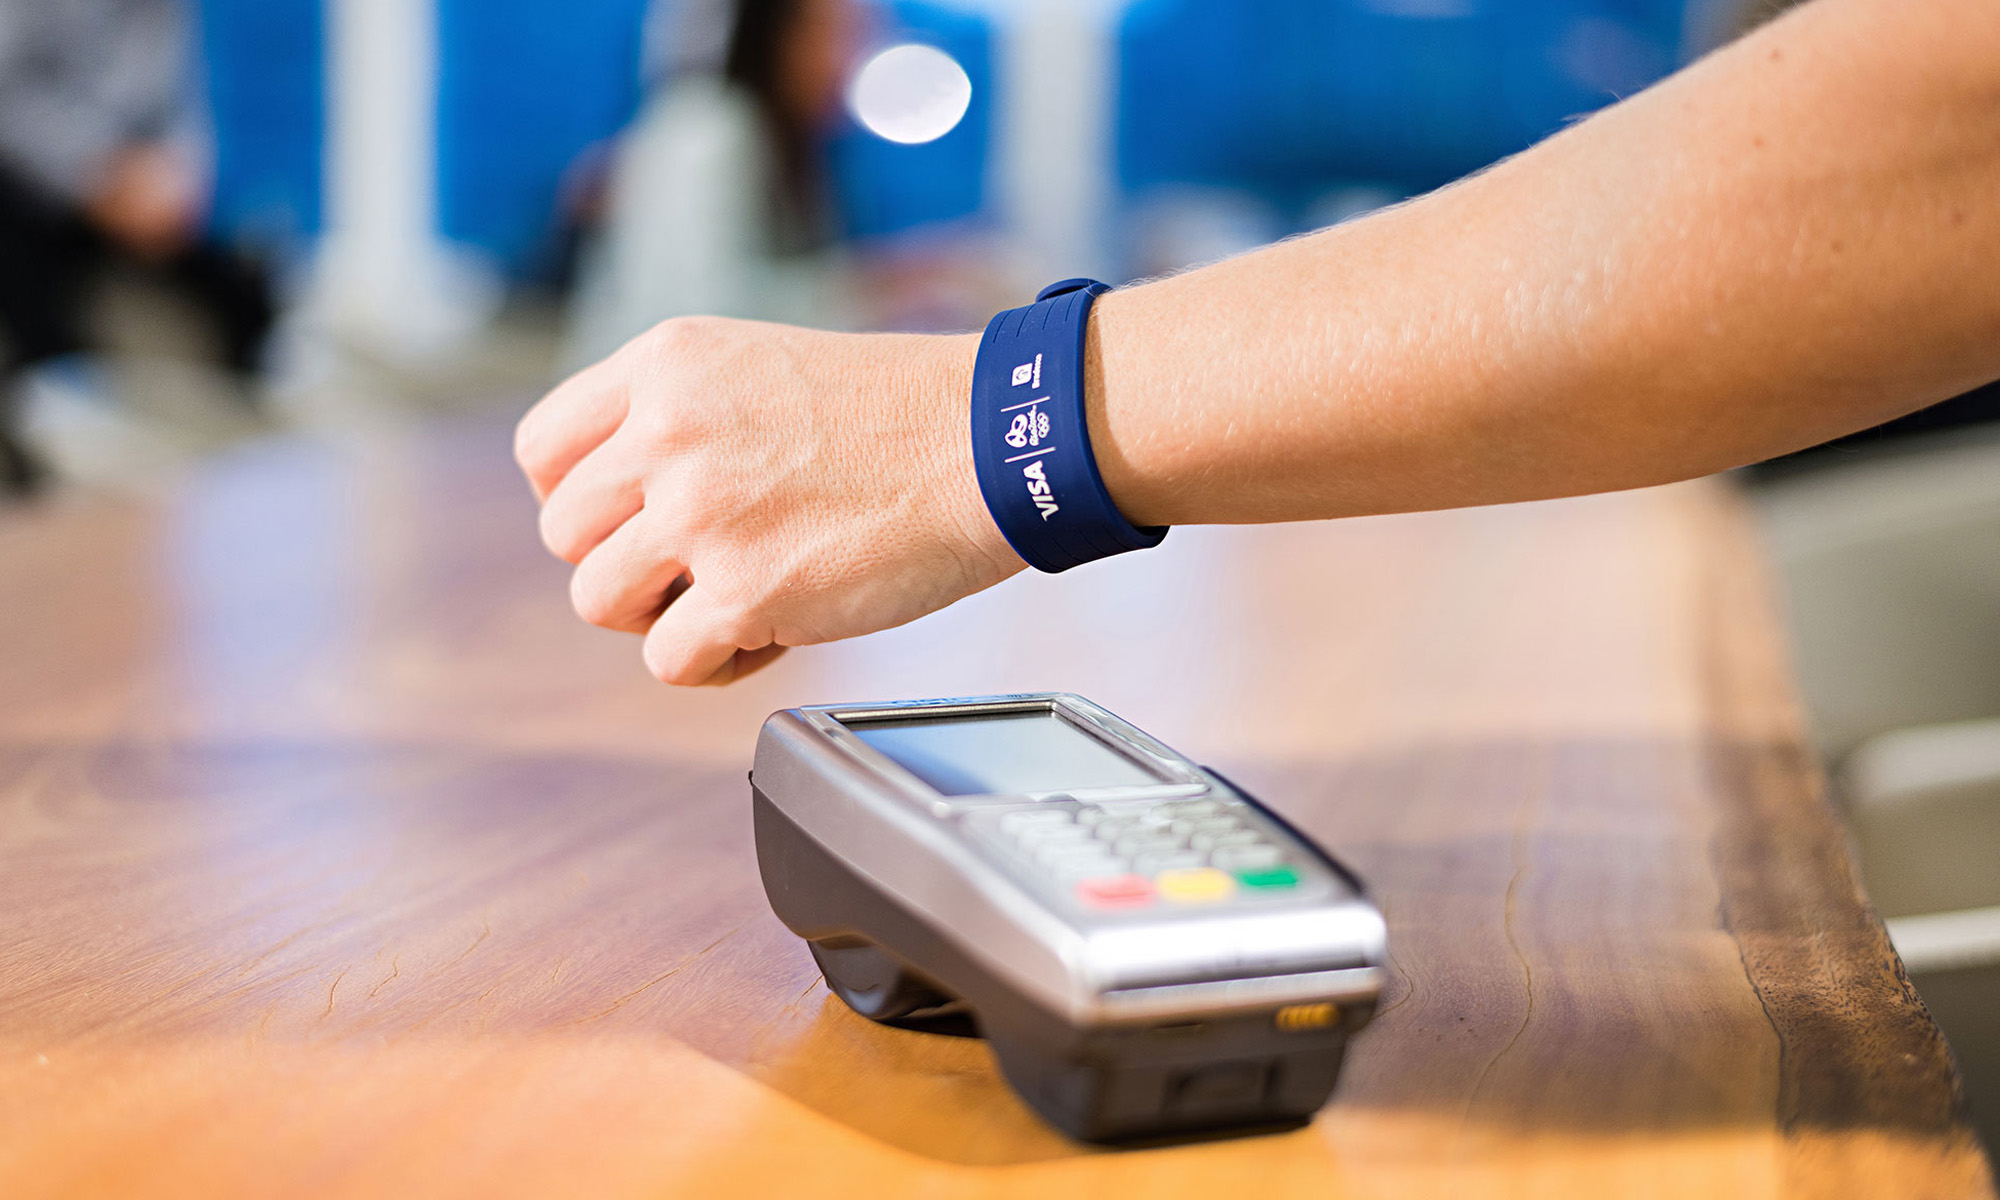 dukhan bank to launch wristband-based payment option